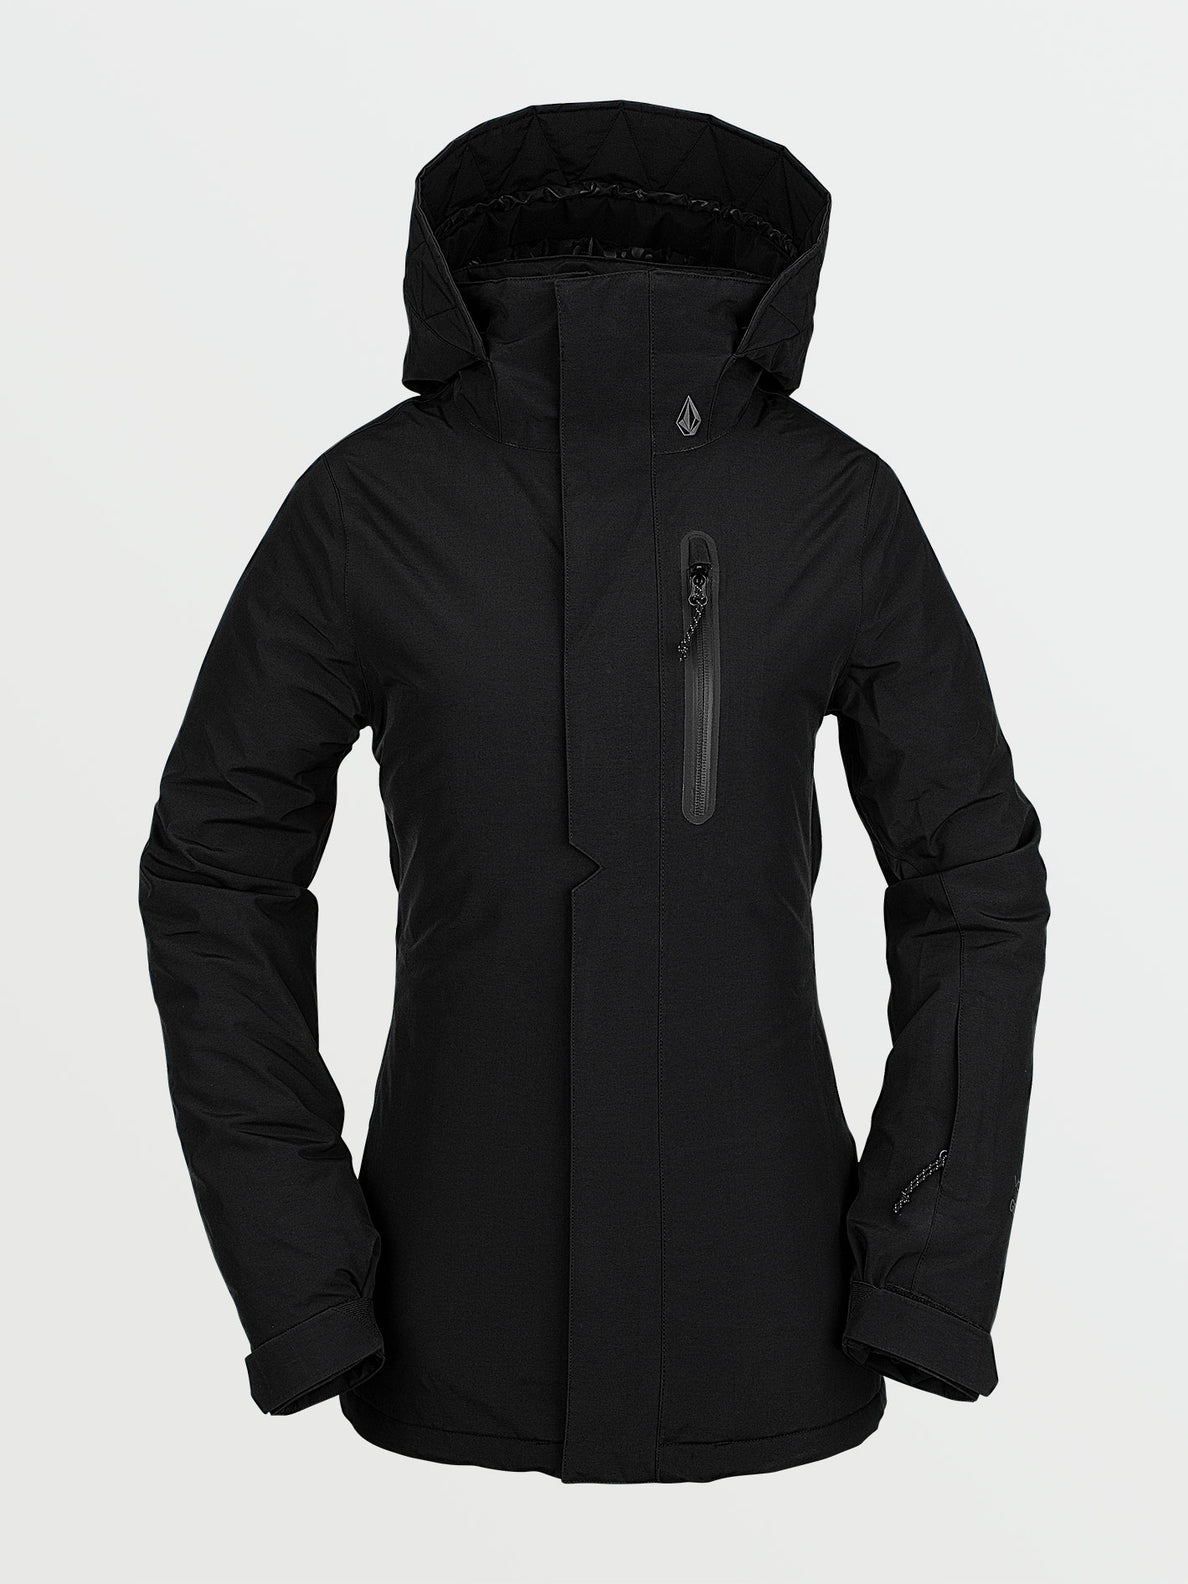 Womens Eva Insulated GORE-TEX Jacket - Black (H0452103_BLK) [F]